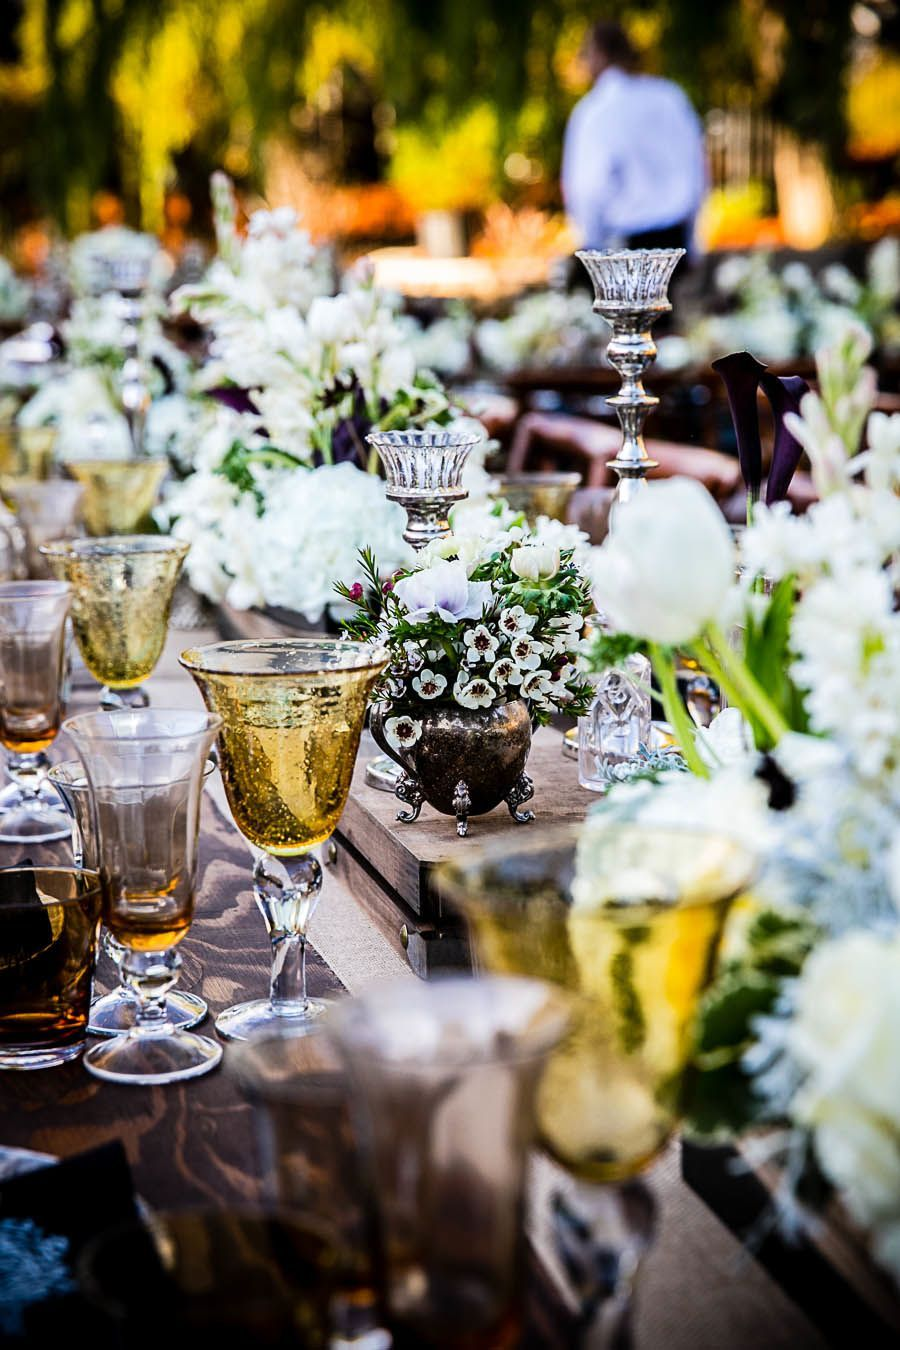 wedding-reception-ideas-33-05152014